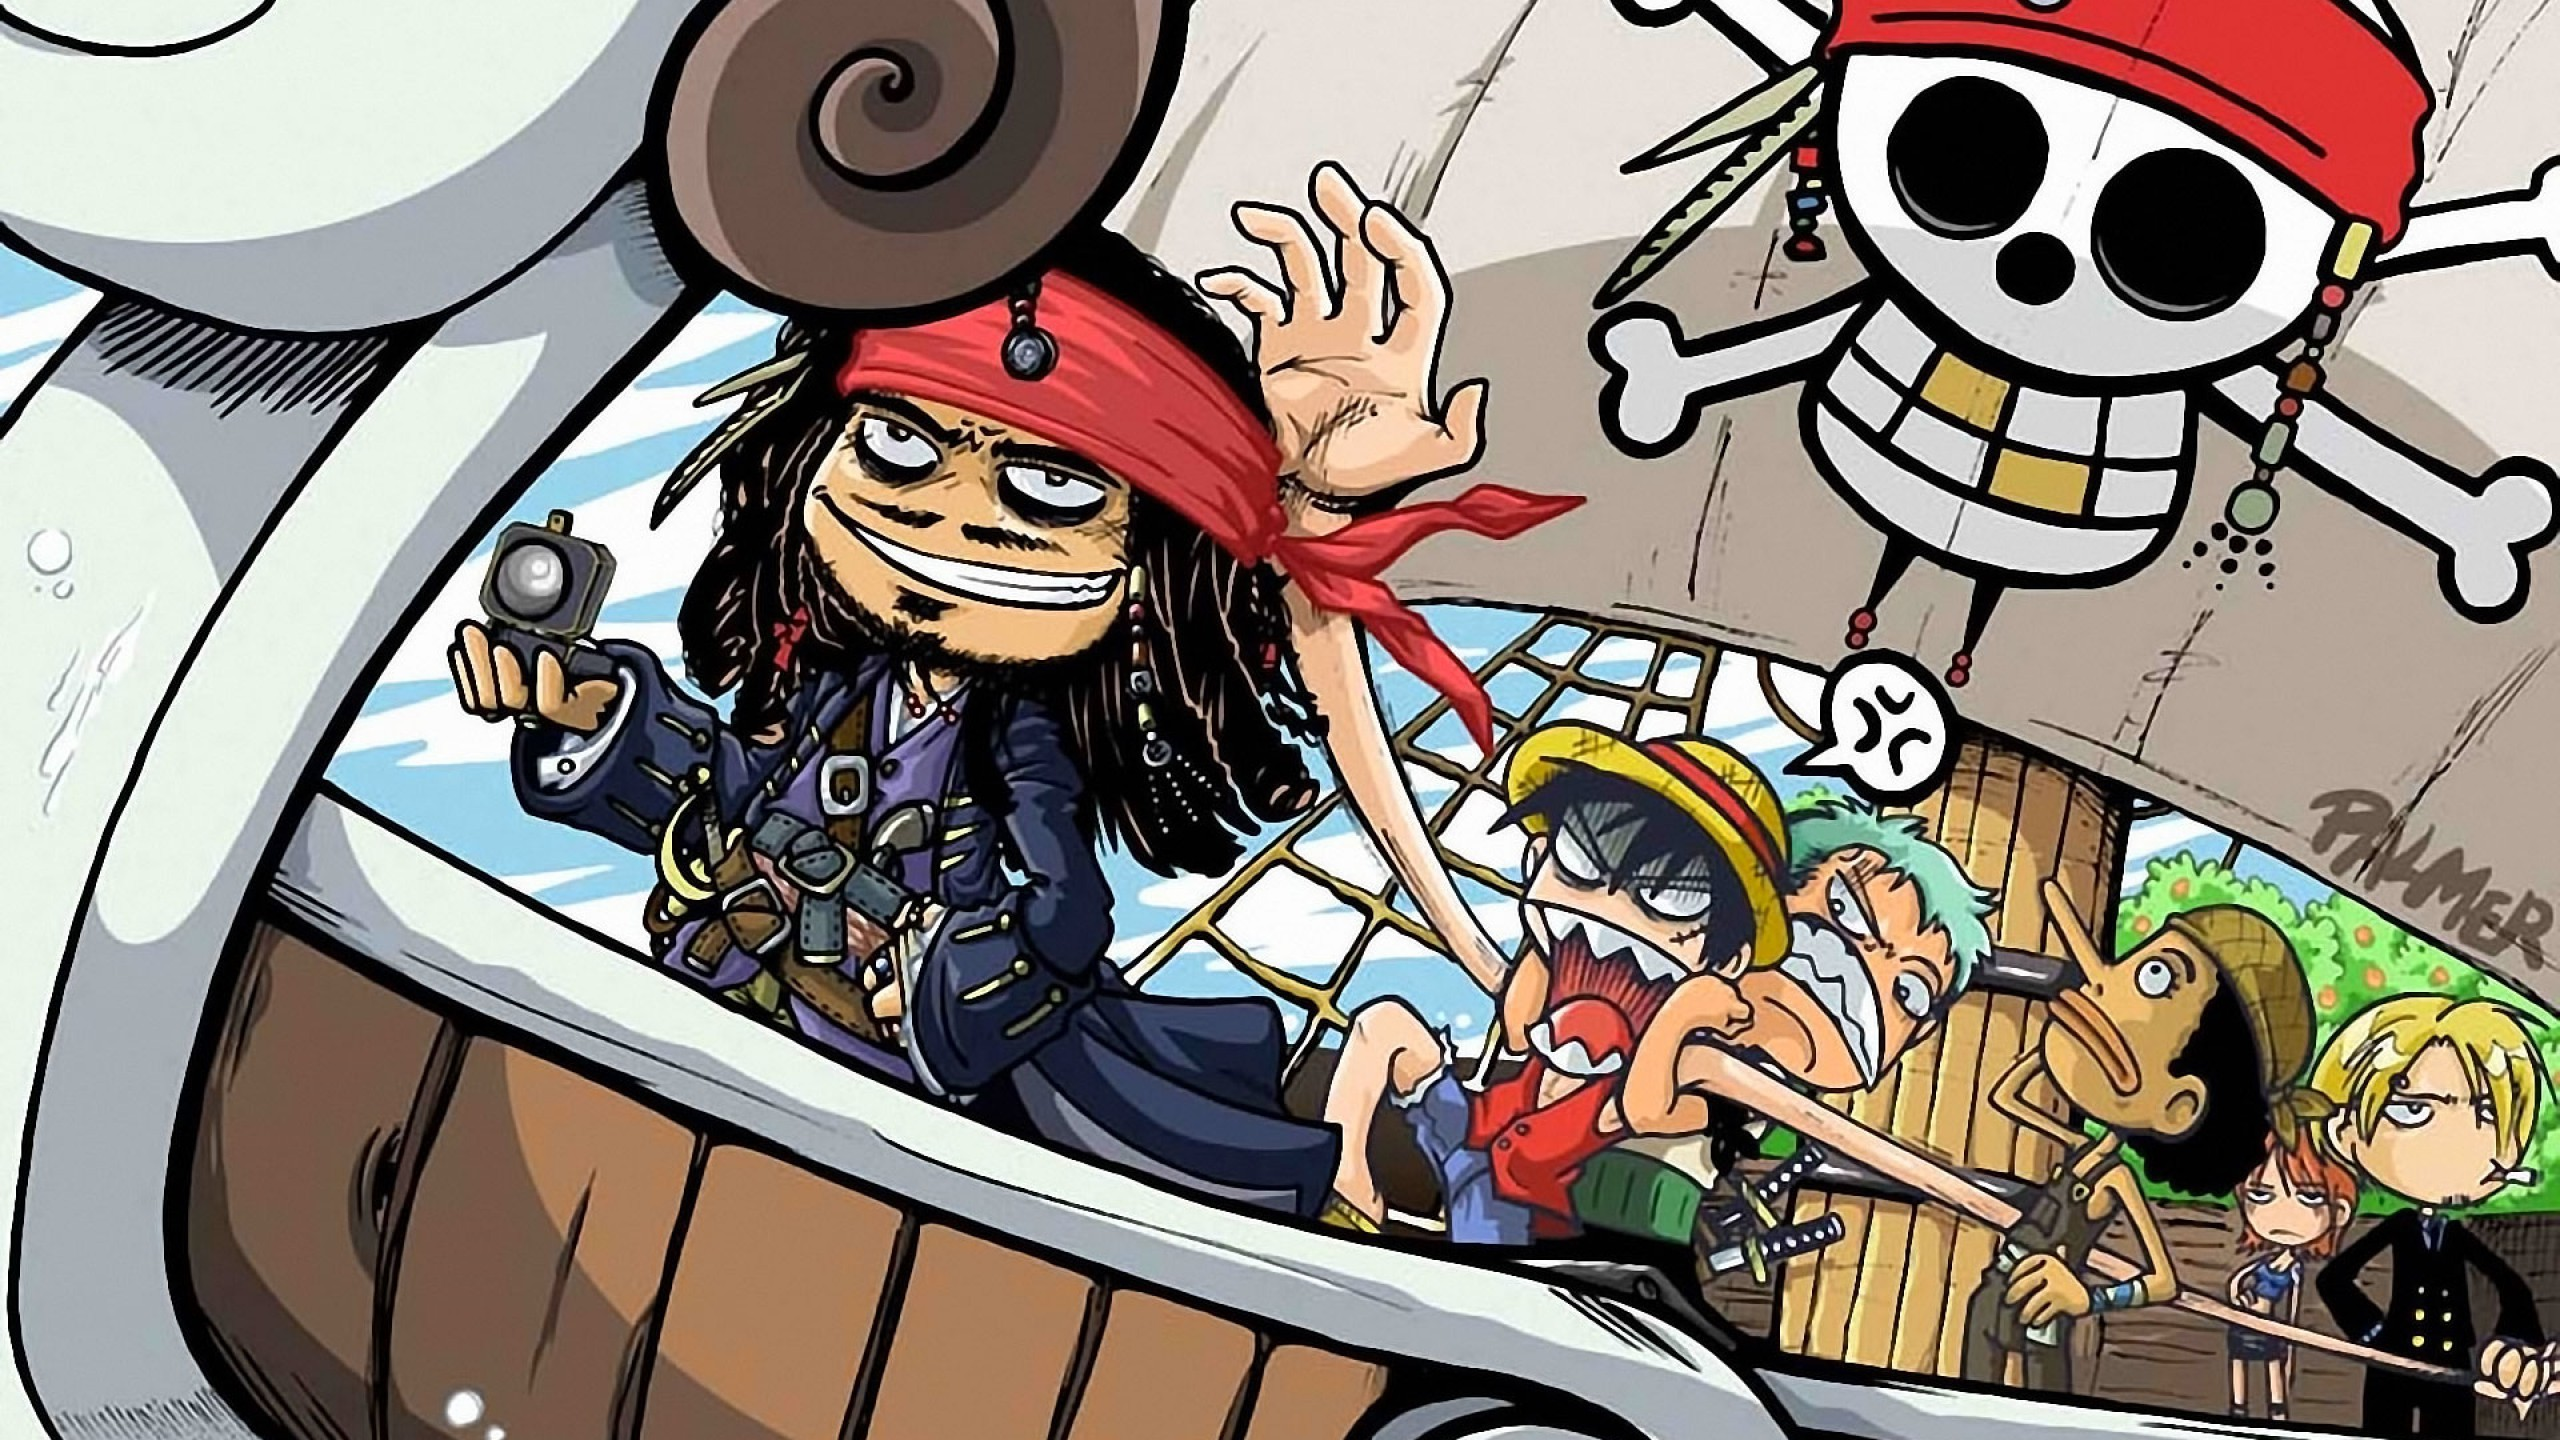 One Piece Wallpaper With Jack Sparrow Hd Free For Desktops Hd Wallpaper